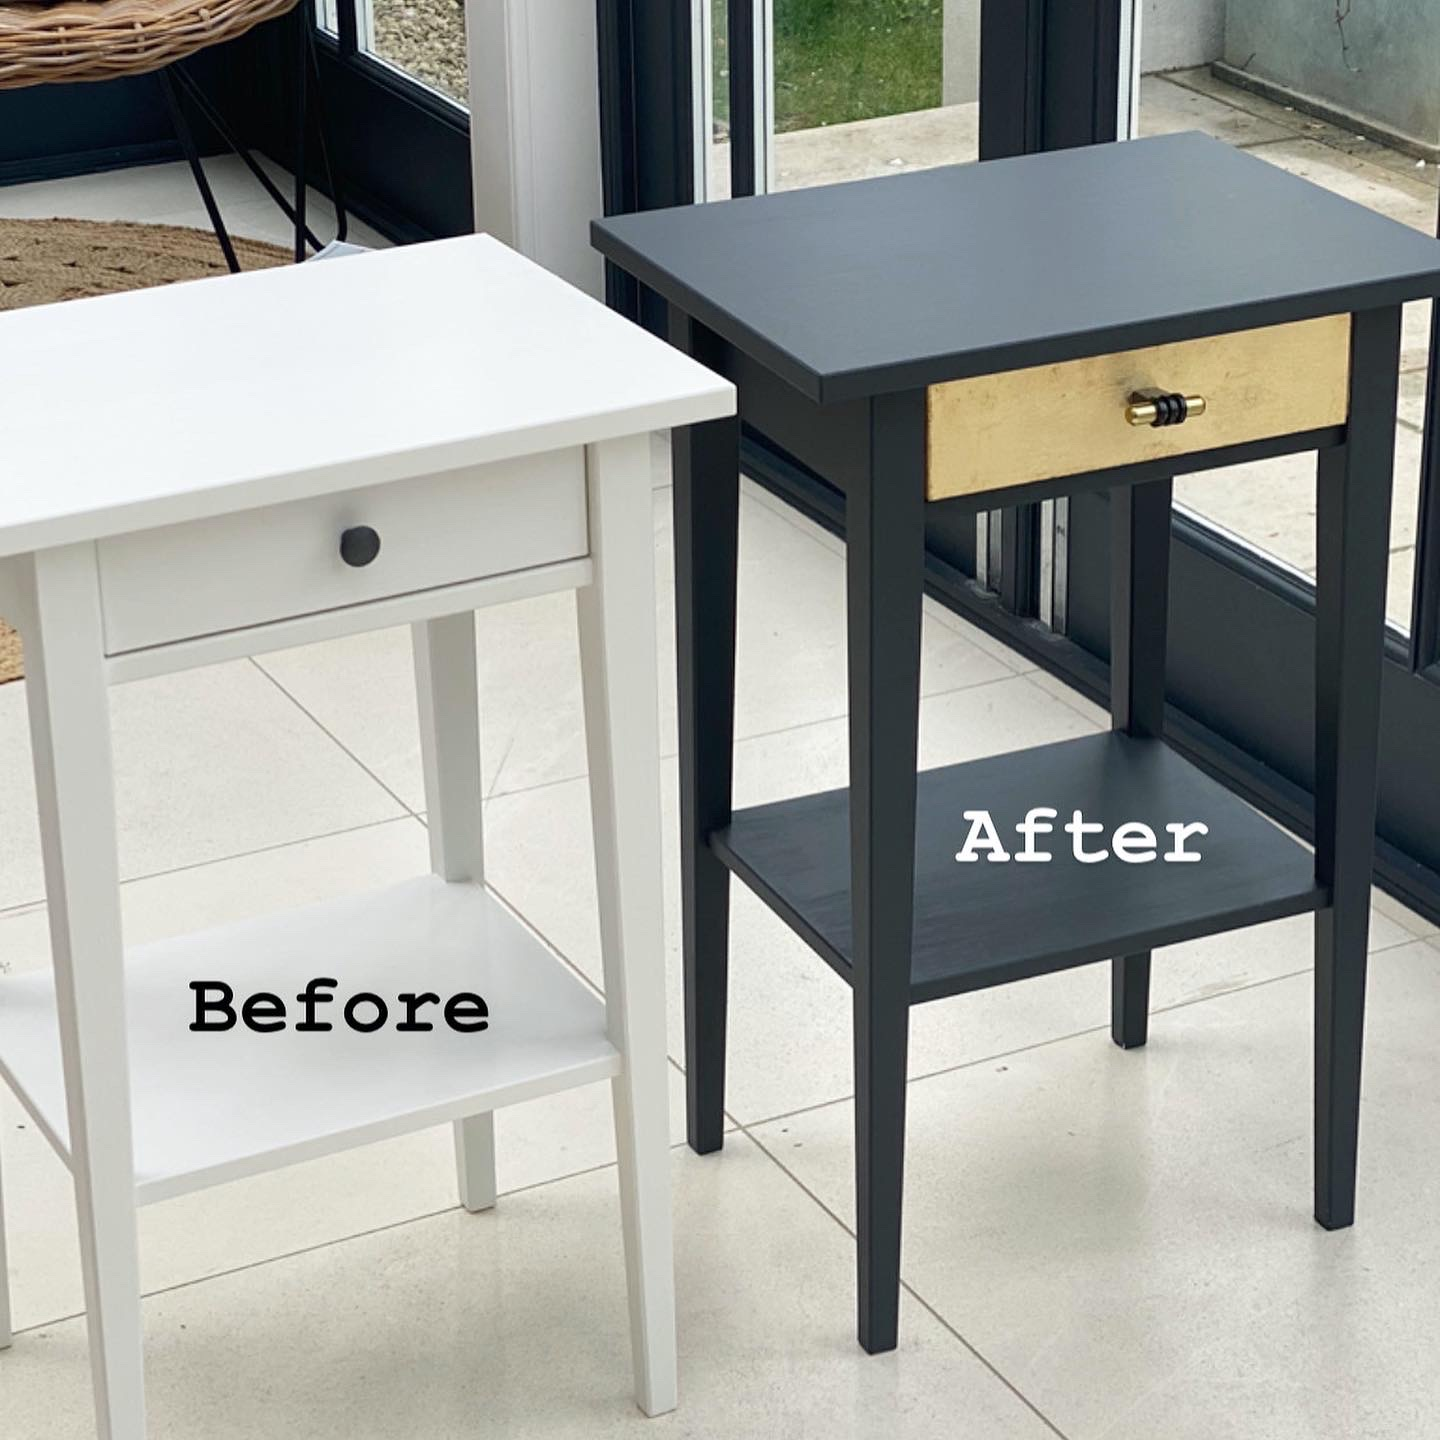 Ikea Hennes Table Hack Before & After